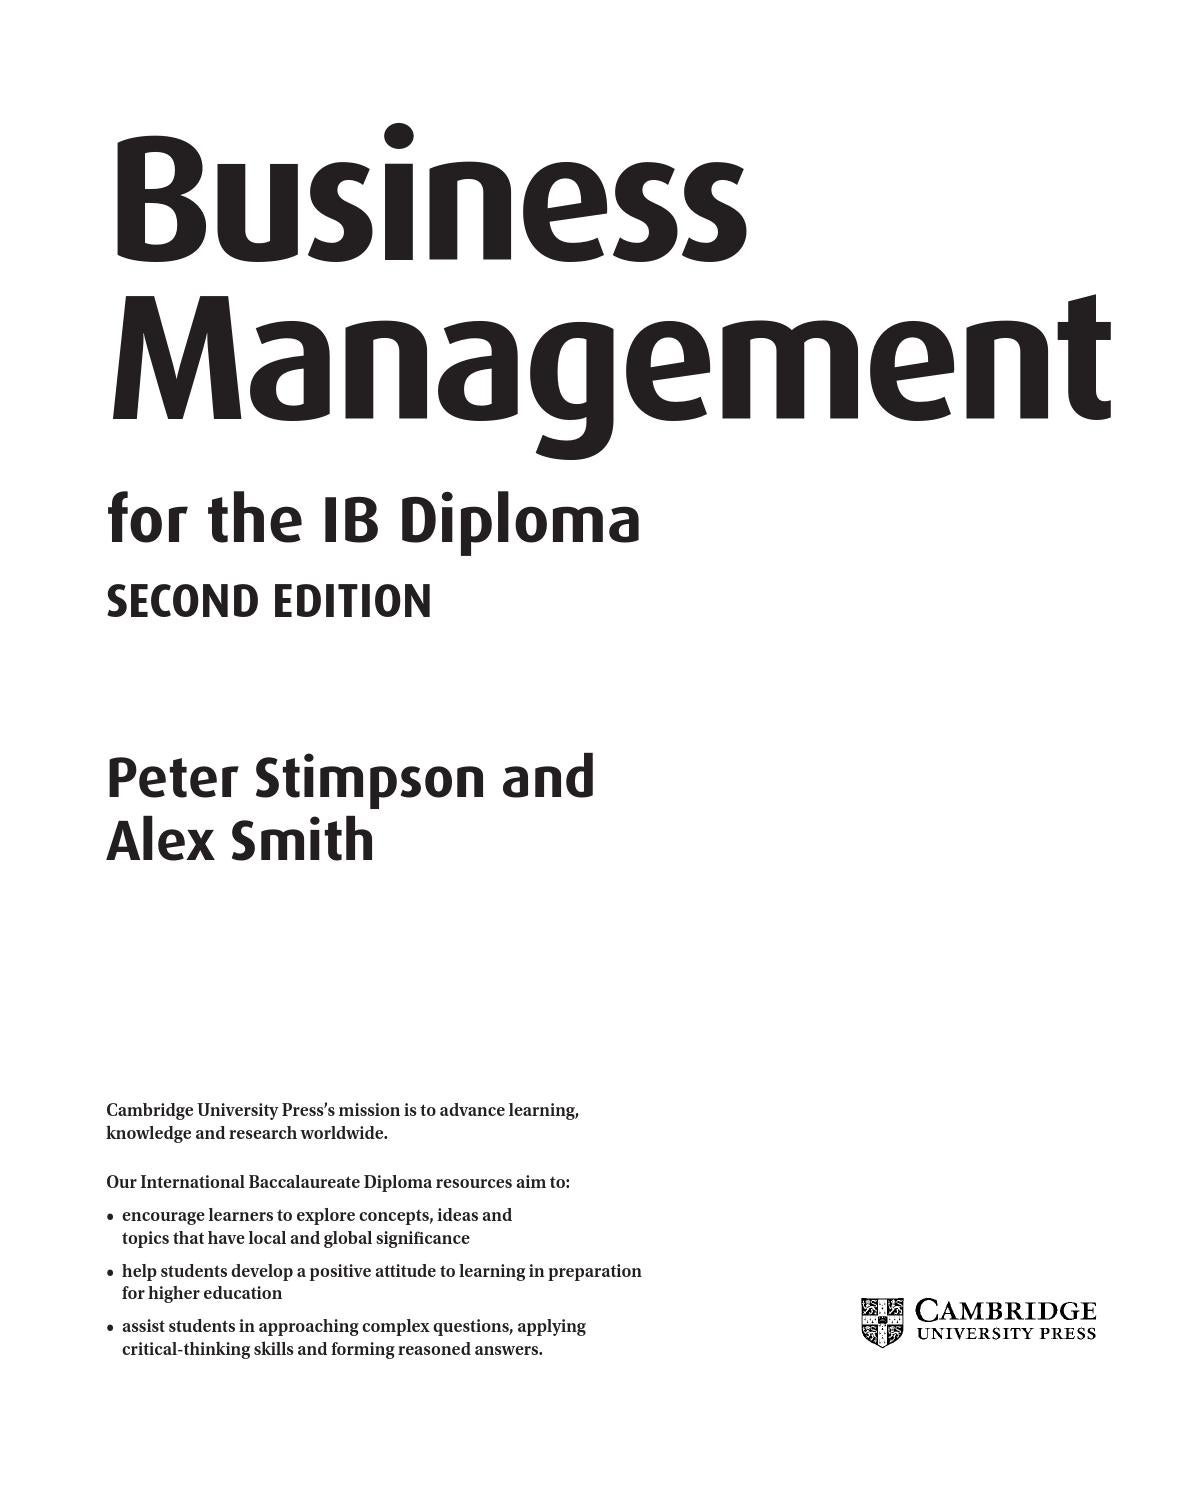 Business Management for the IB Diploma (second edition) by